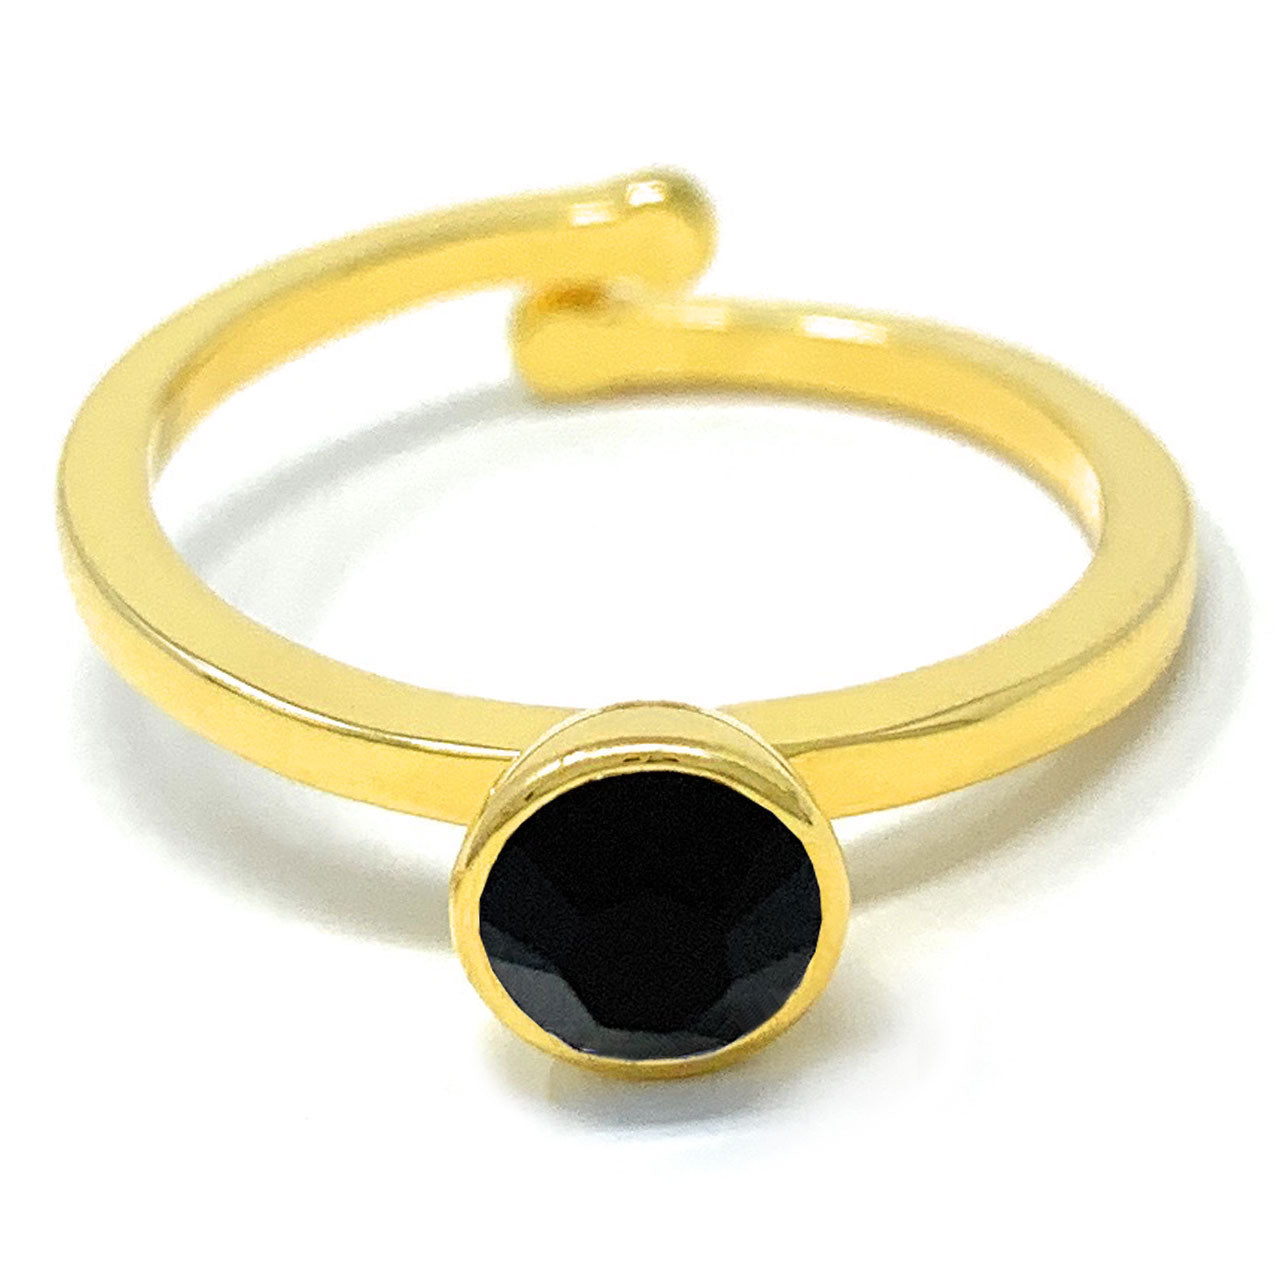 Harley Adjustable Ring with Black Jet Round Crystals from Swarovski Gold Plated - Ed Heart